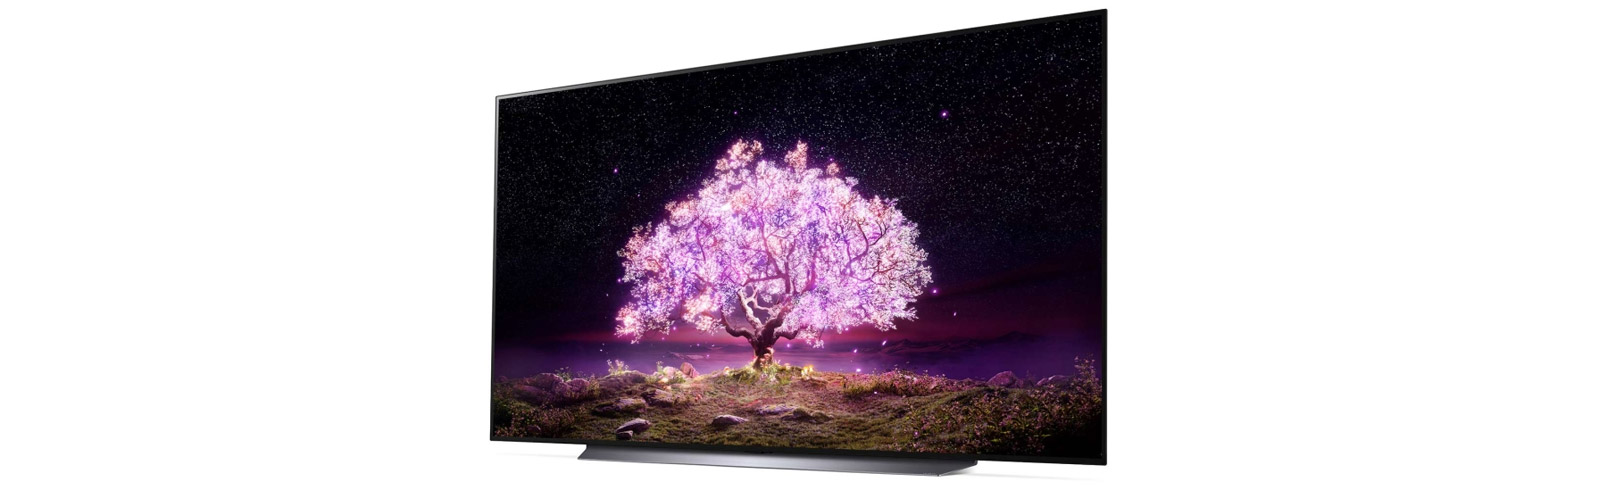 """The LG OLED83C1PUA specifications - LG's first 83"""" OLED TV from the 2021 C1 series is listed"""